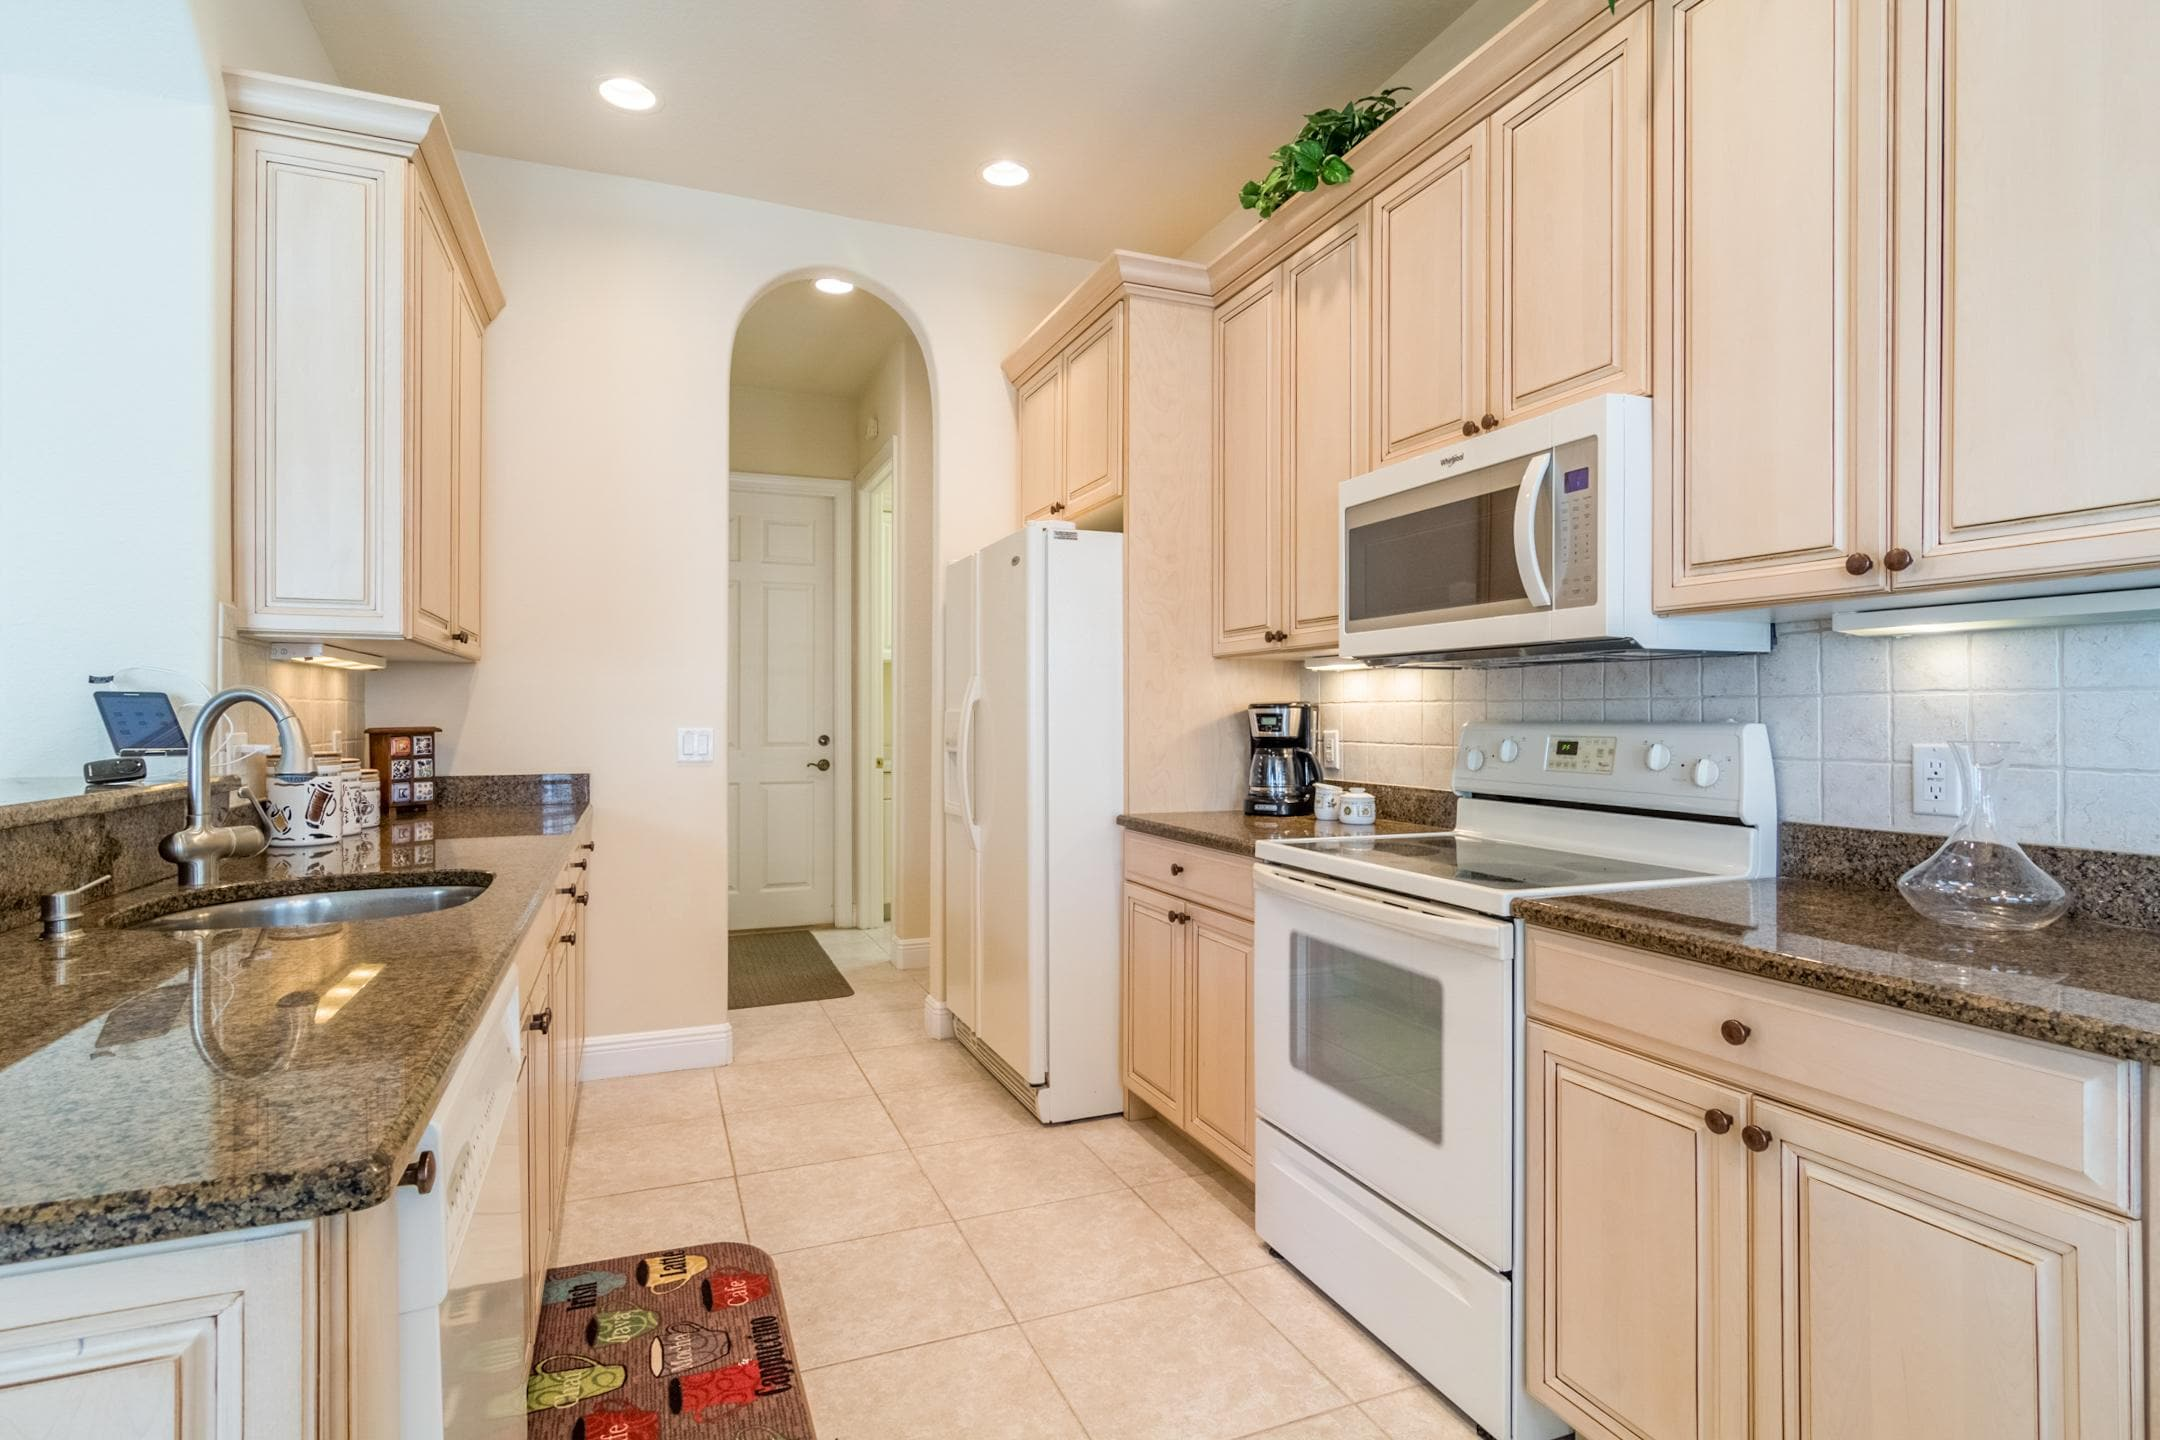 Arched doorways and sparkling granite countertops set an elegant tone in the gourmet kitchen.